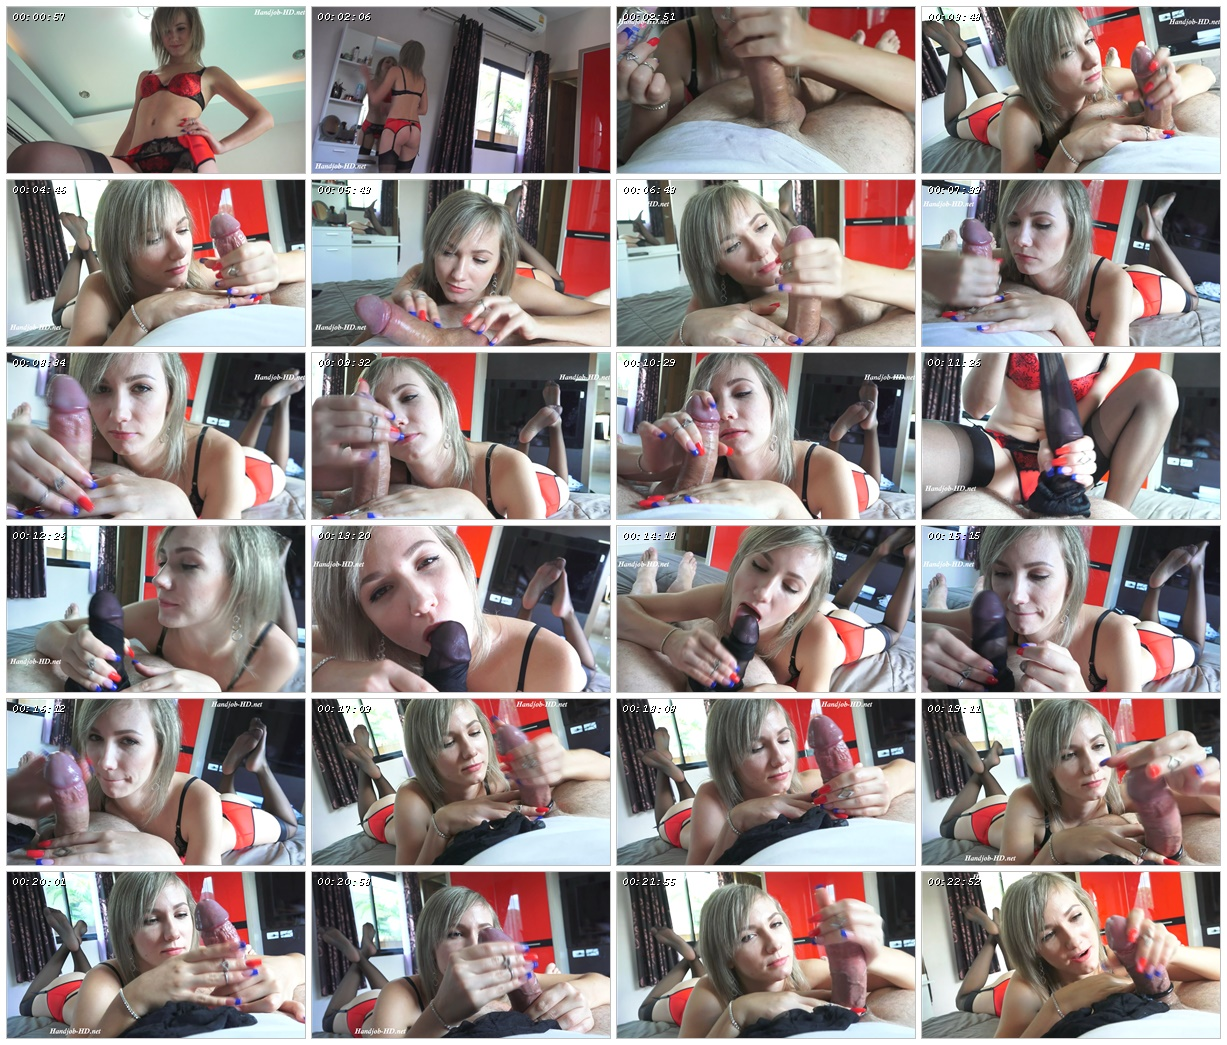 346 This hand job you'll never forget - Angel The Dreamgirl_scrlist